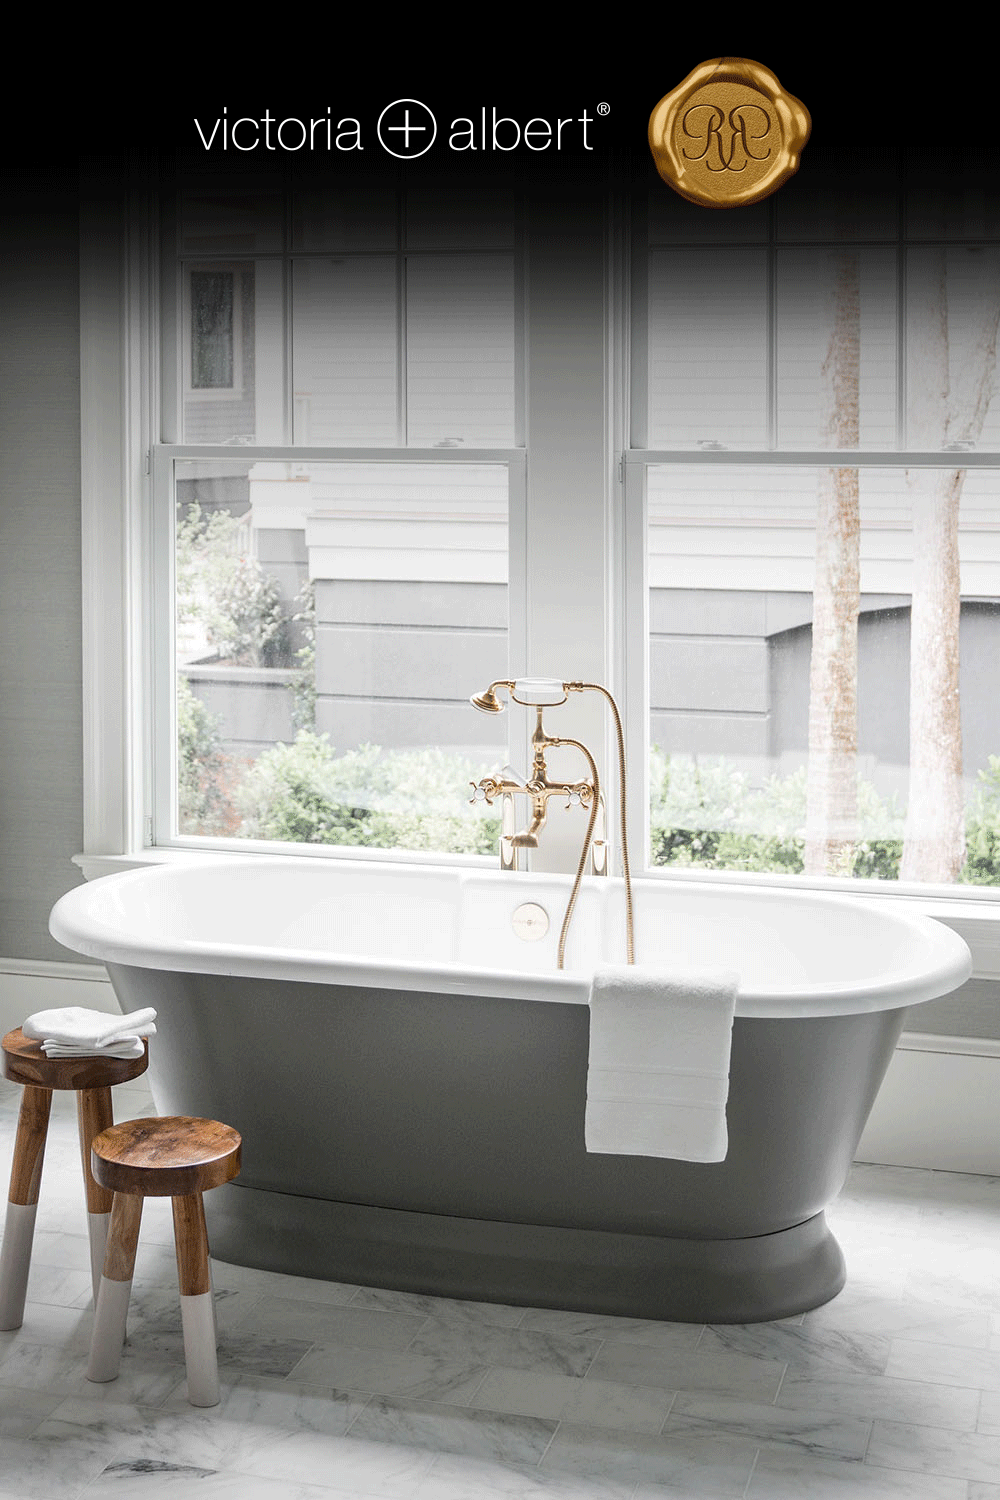 Tie Your Bathroom Color Scheme Together With The Victoria Albert Double Ended Elwick Tub In A D In 2020 Bathroom Color Schemes House Bathroom Bathroom Remodel Shower